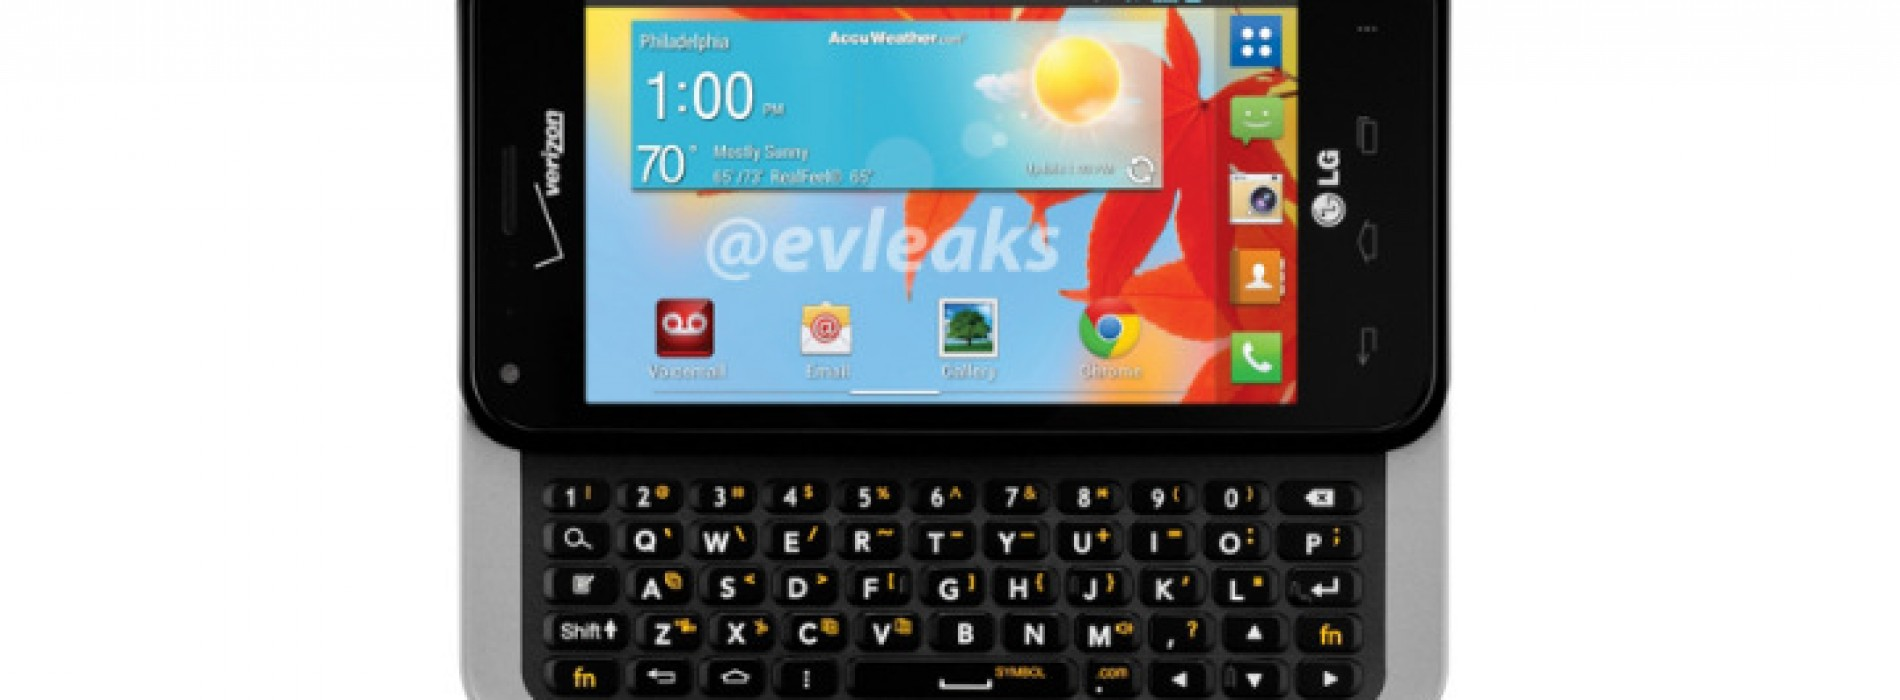 QWERTY slider LG Enact headed to Verizon in coming days, report says